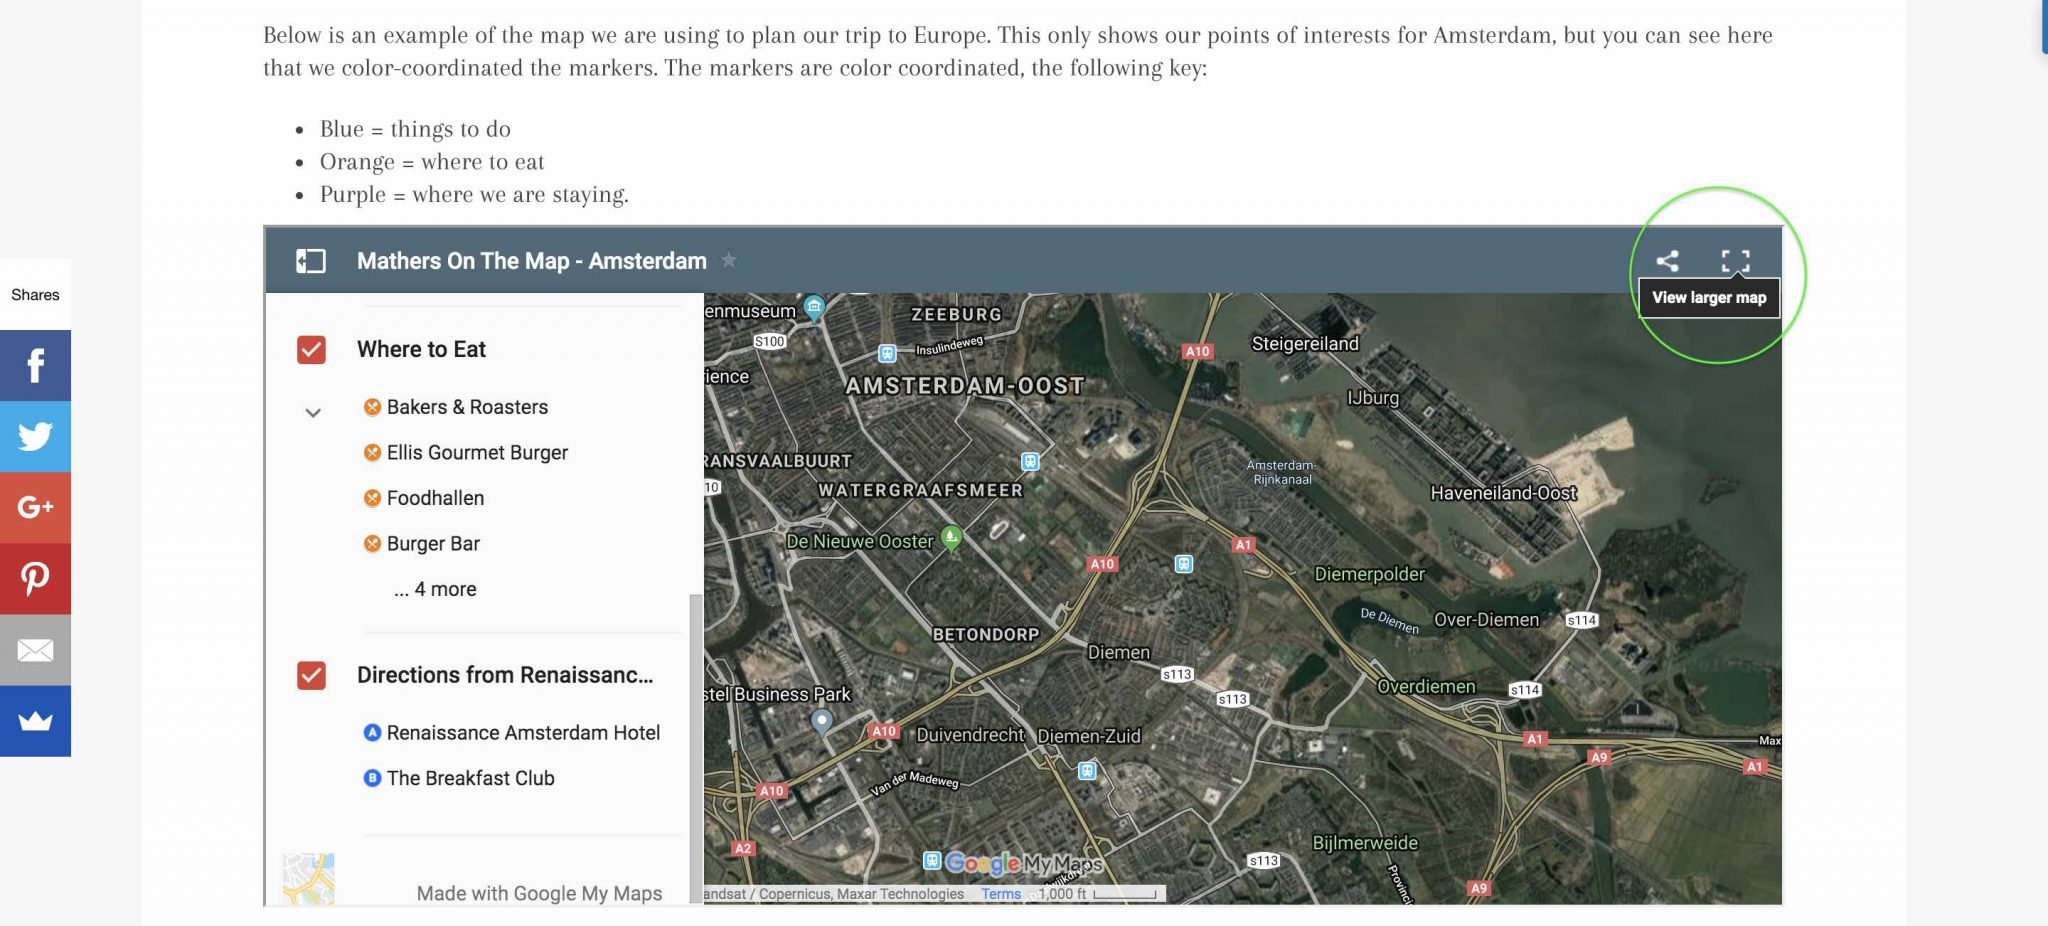 click view larger map to make a copy of your own - how to plan a vacation using google my maps